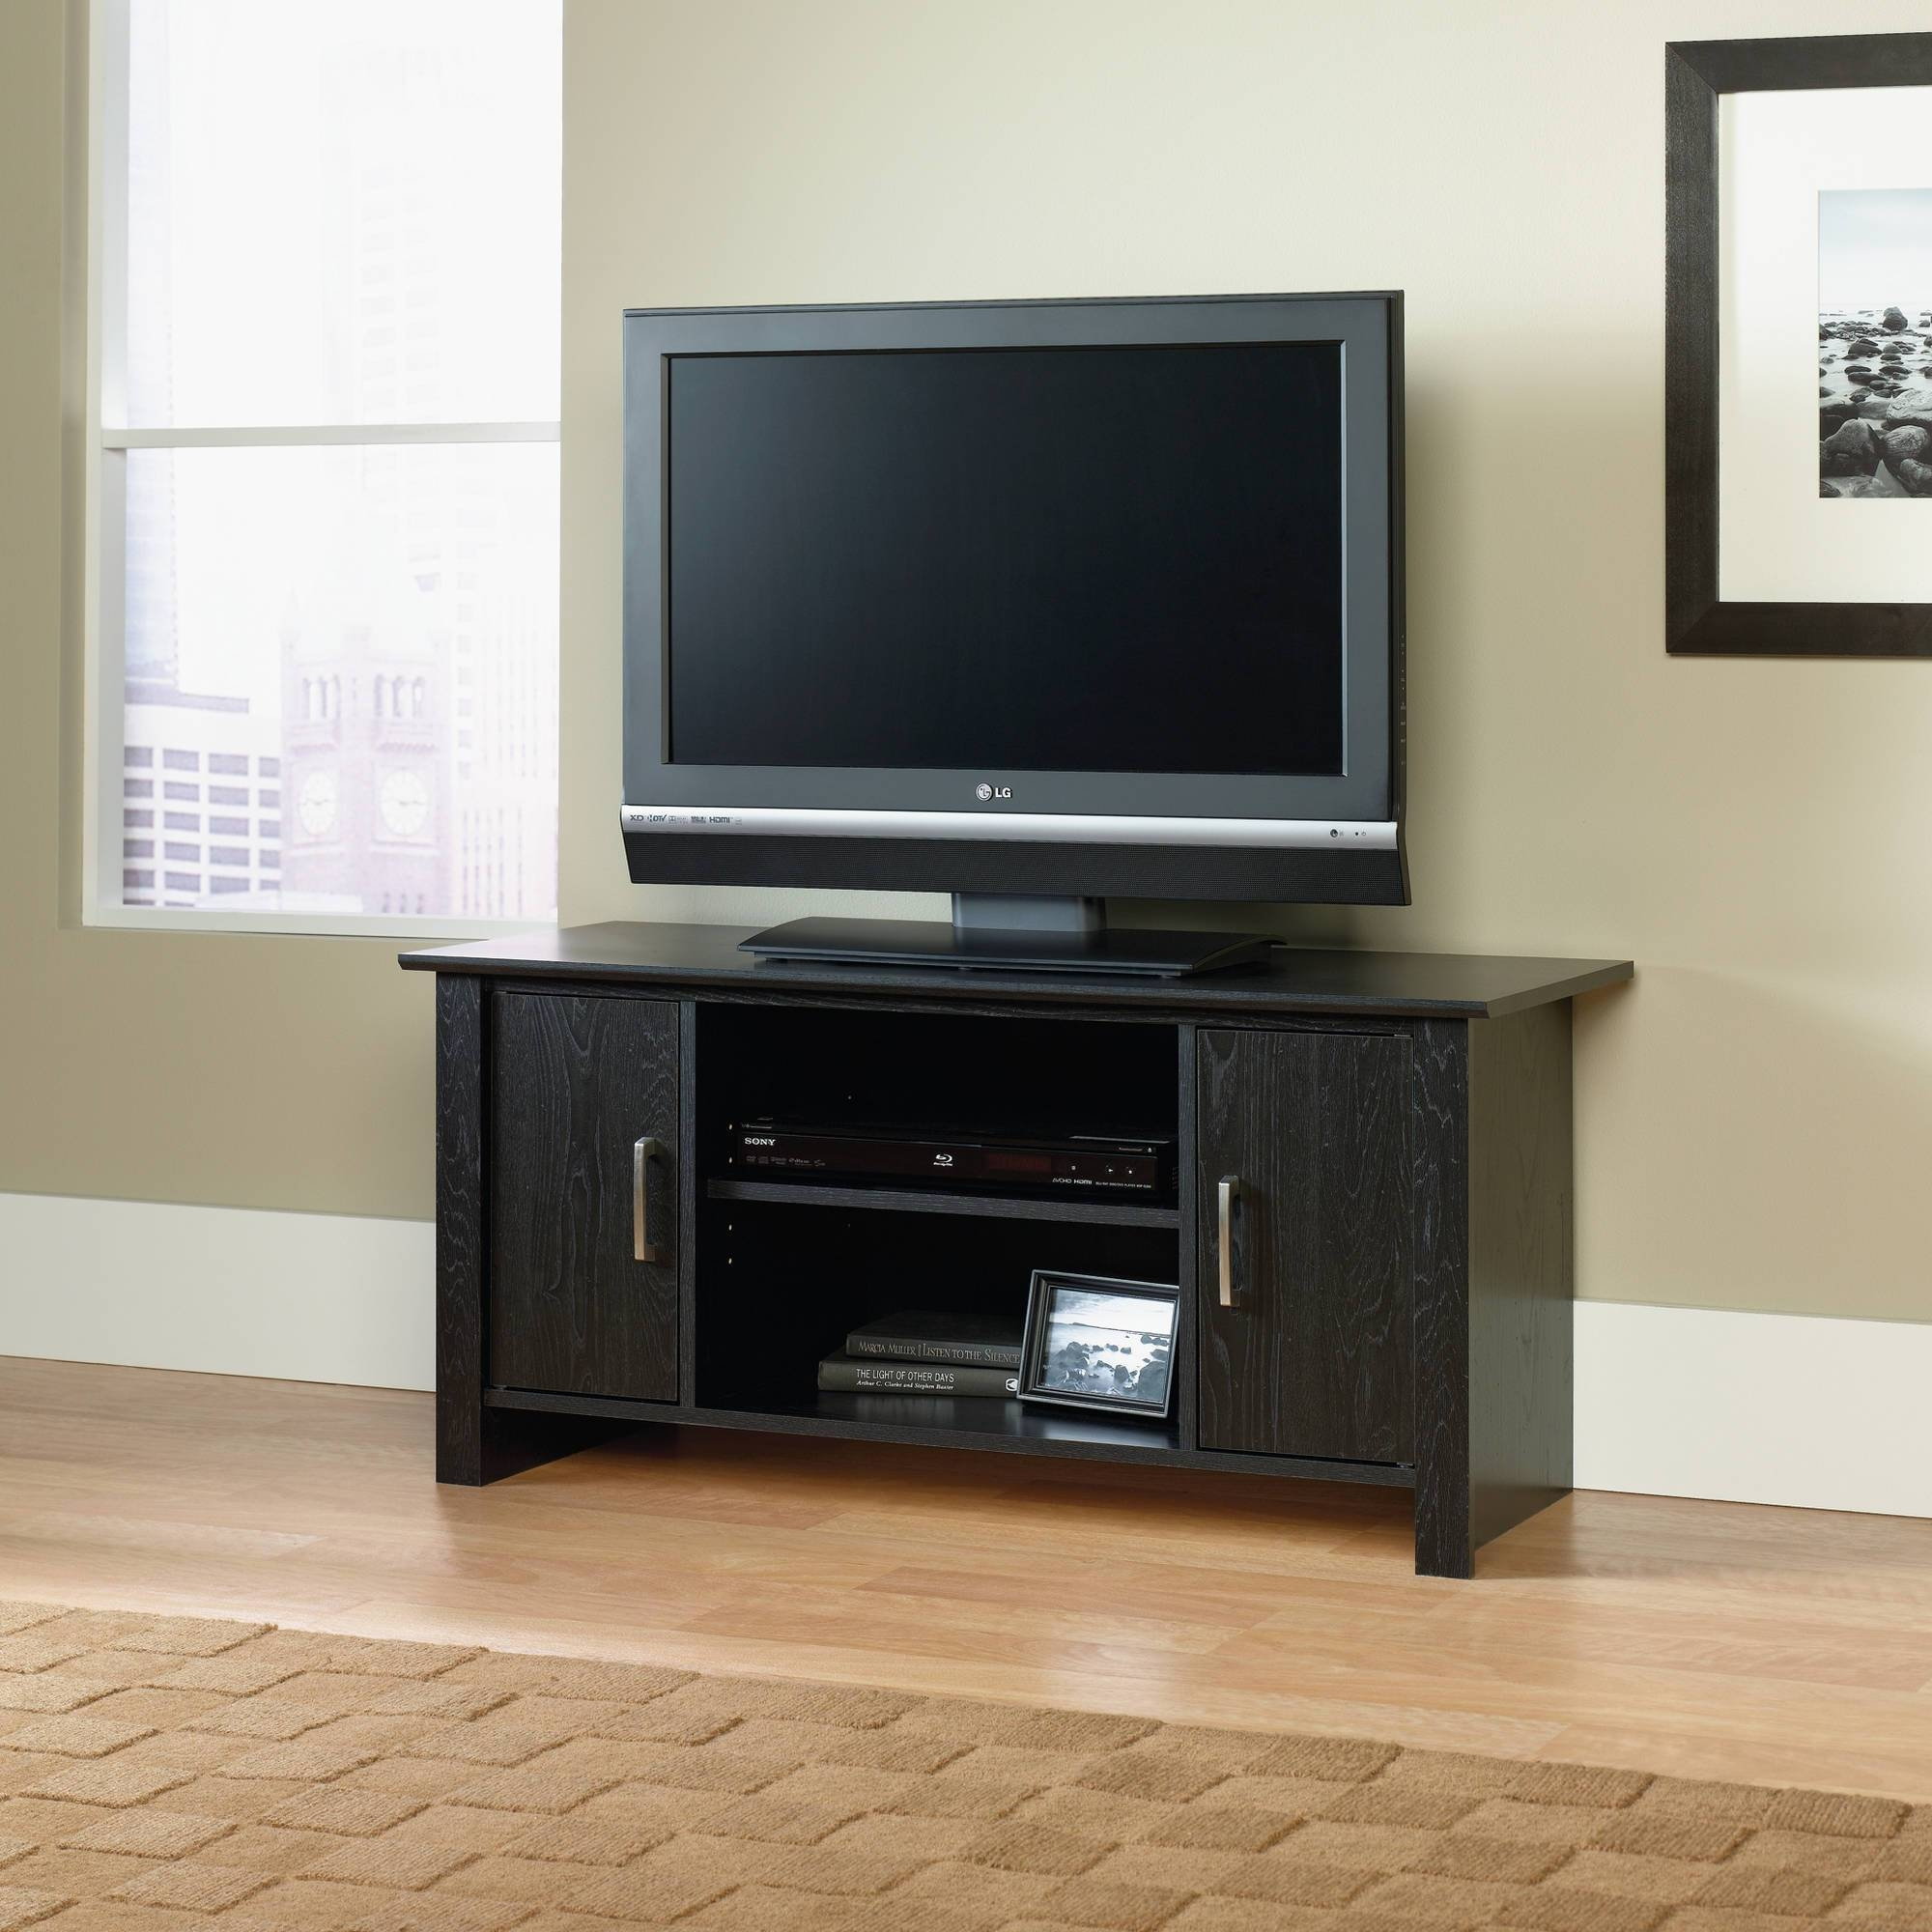 Tv Stands & Entertainment Centers - Walmart in 24 Inch Wide Tv Stands (Image 12 of 15)